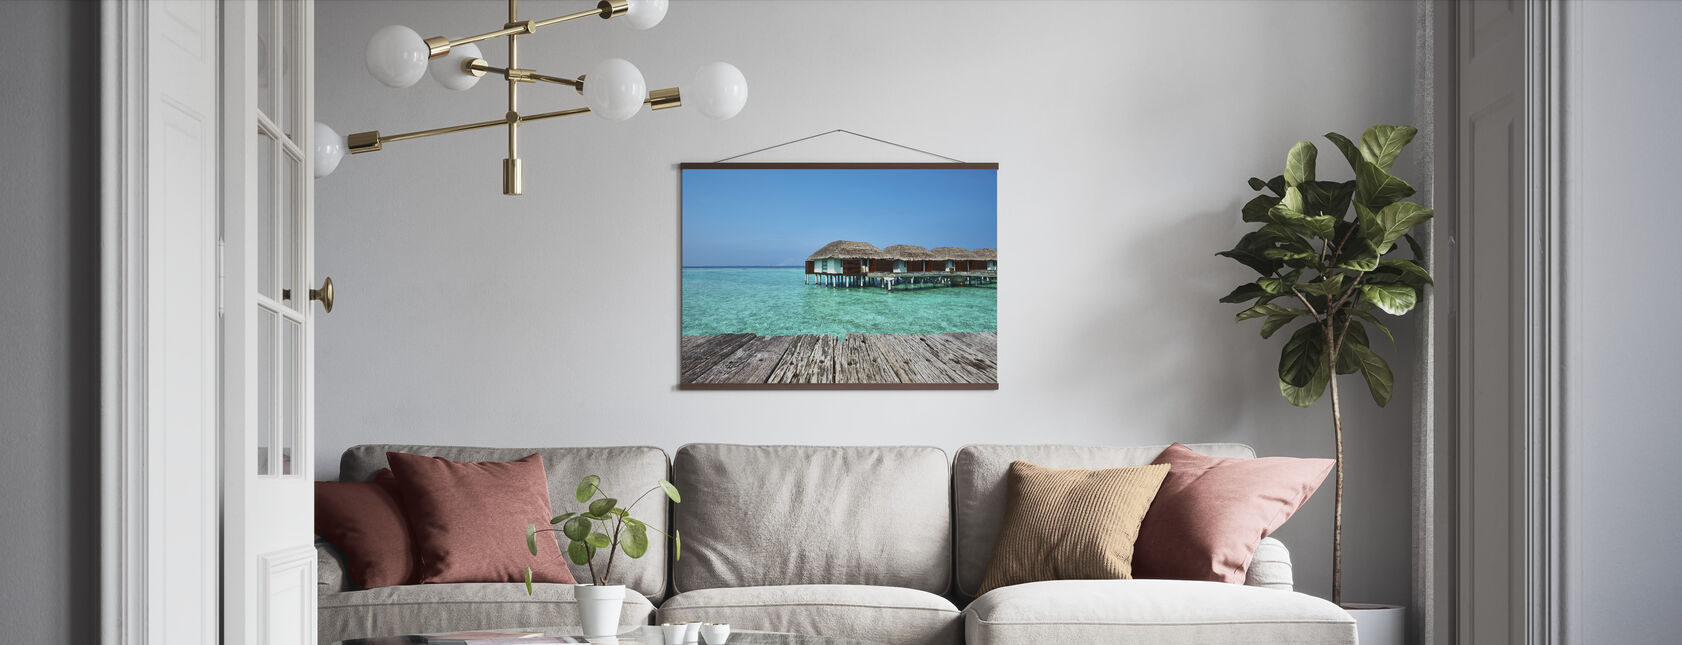 Holiday View - Poster - Living Room